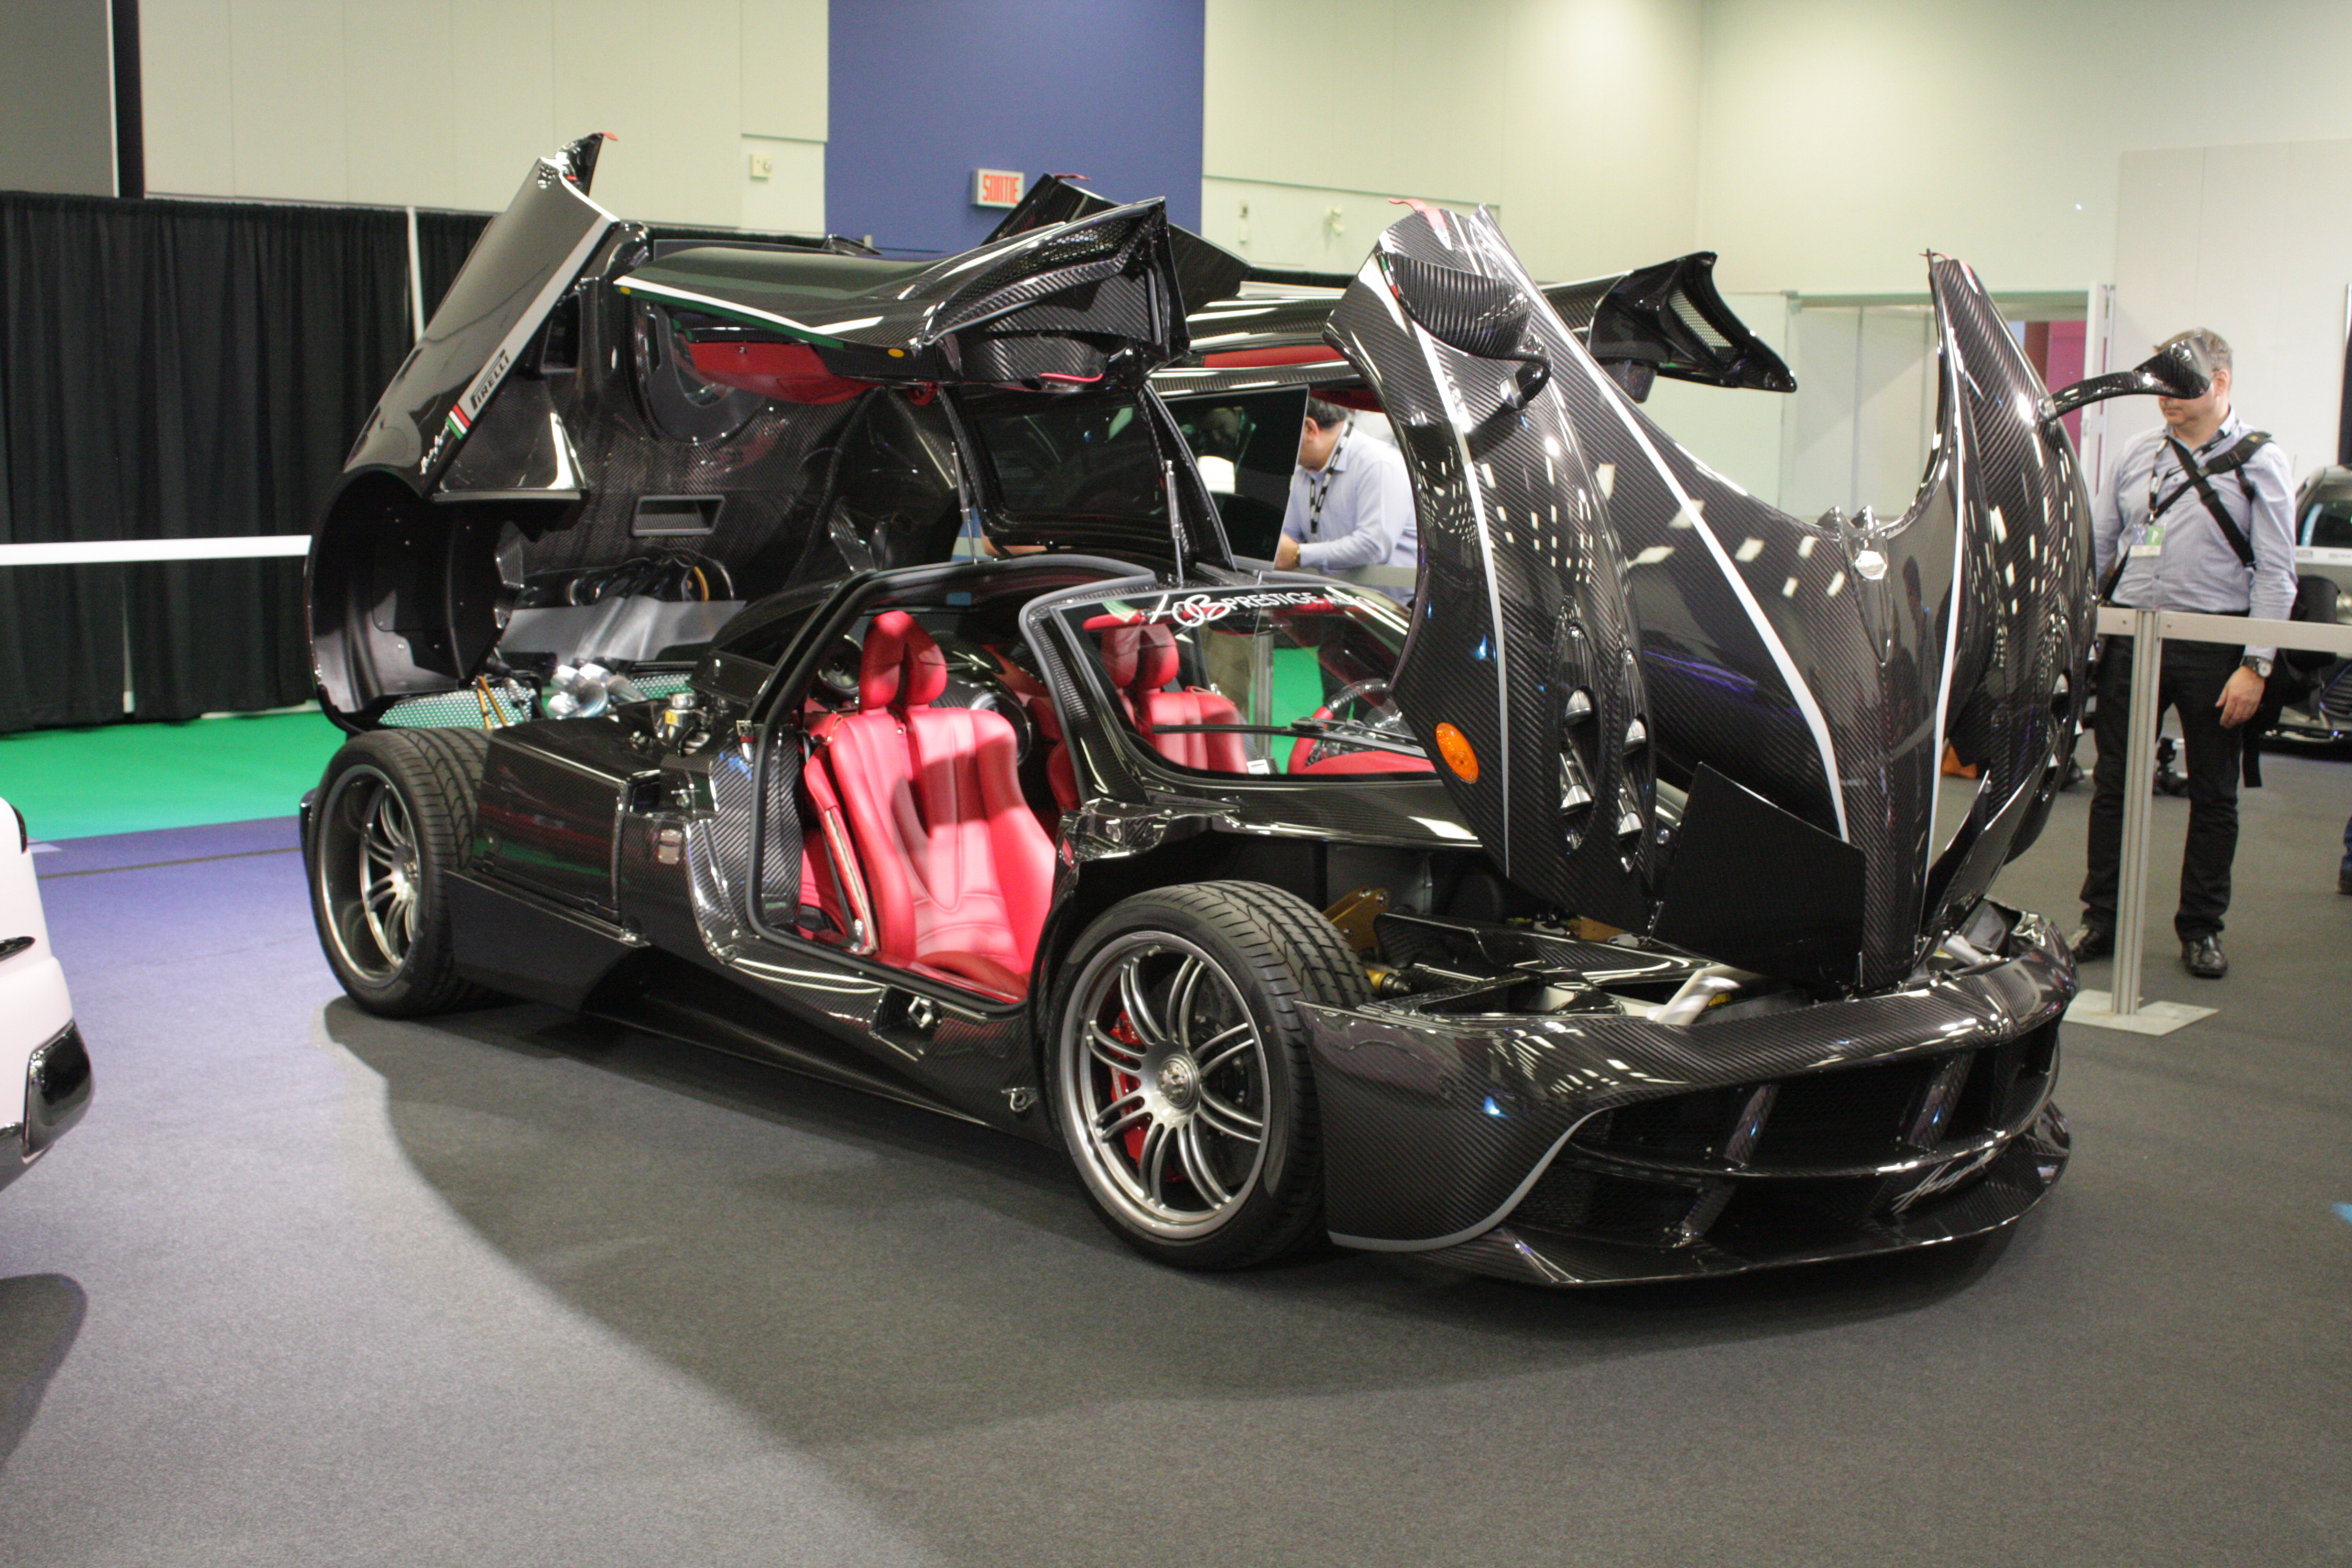 The Pagani Huayra is an Italian supercar powered by a Mercedes-AMG V12 engine.